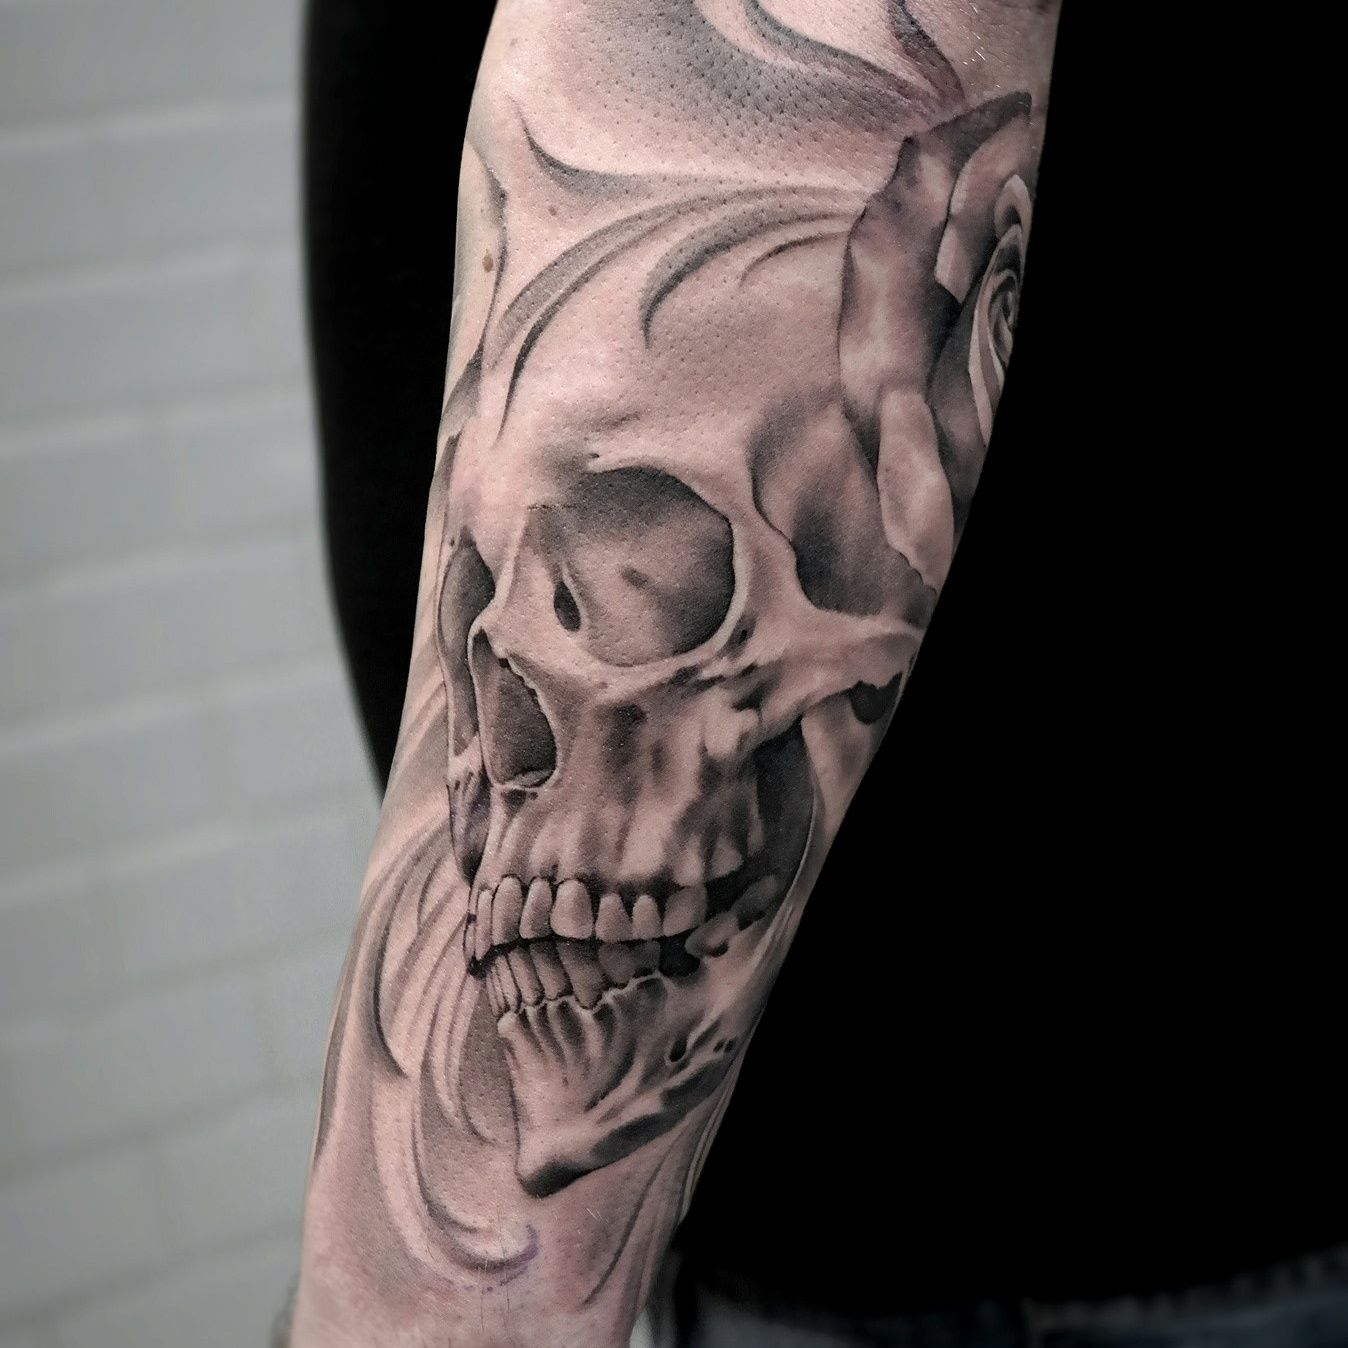 black and gray skull artist janissvars blackandgray blackngray skull sleeve tattoo. Black Bedroom Furniture Sets. Home Design Ideas